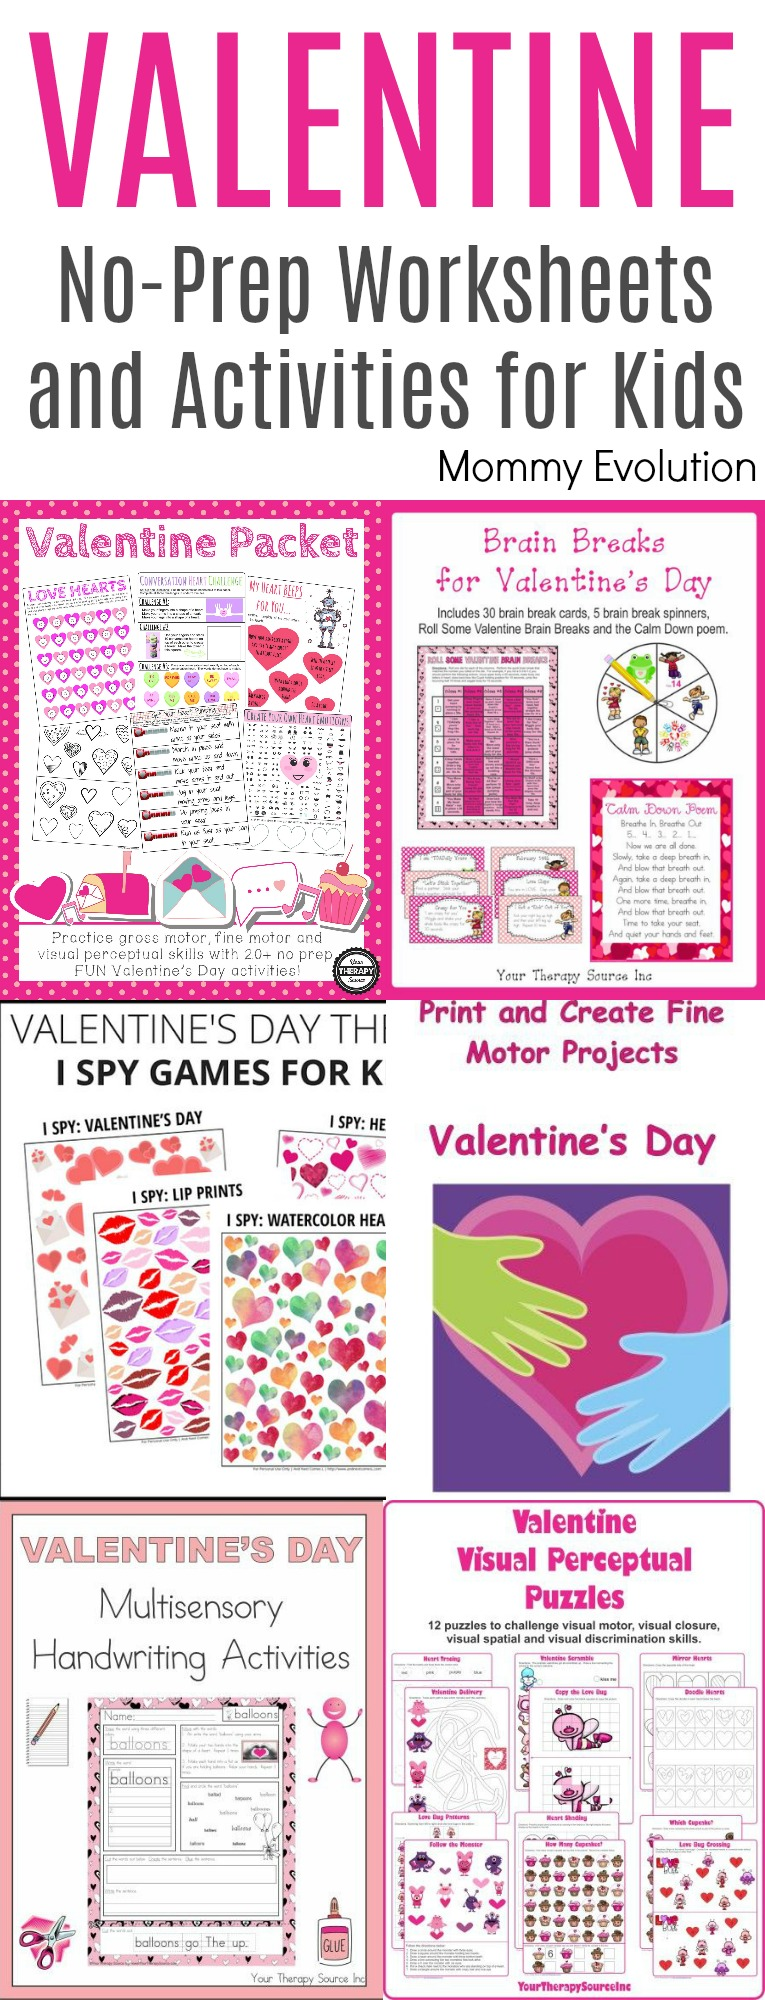 No-Prep Valentine Worksheets and Activities for Kids - Perfect for Classroom, School Party or School Occupational Therapy | Mommy Evolution